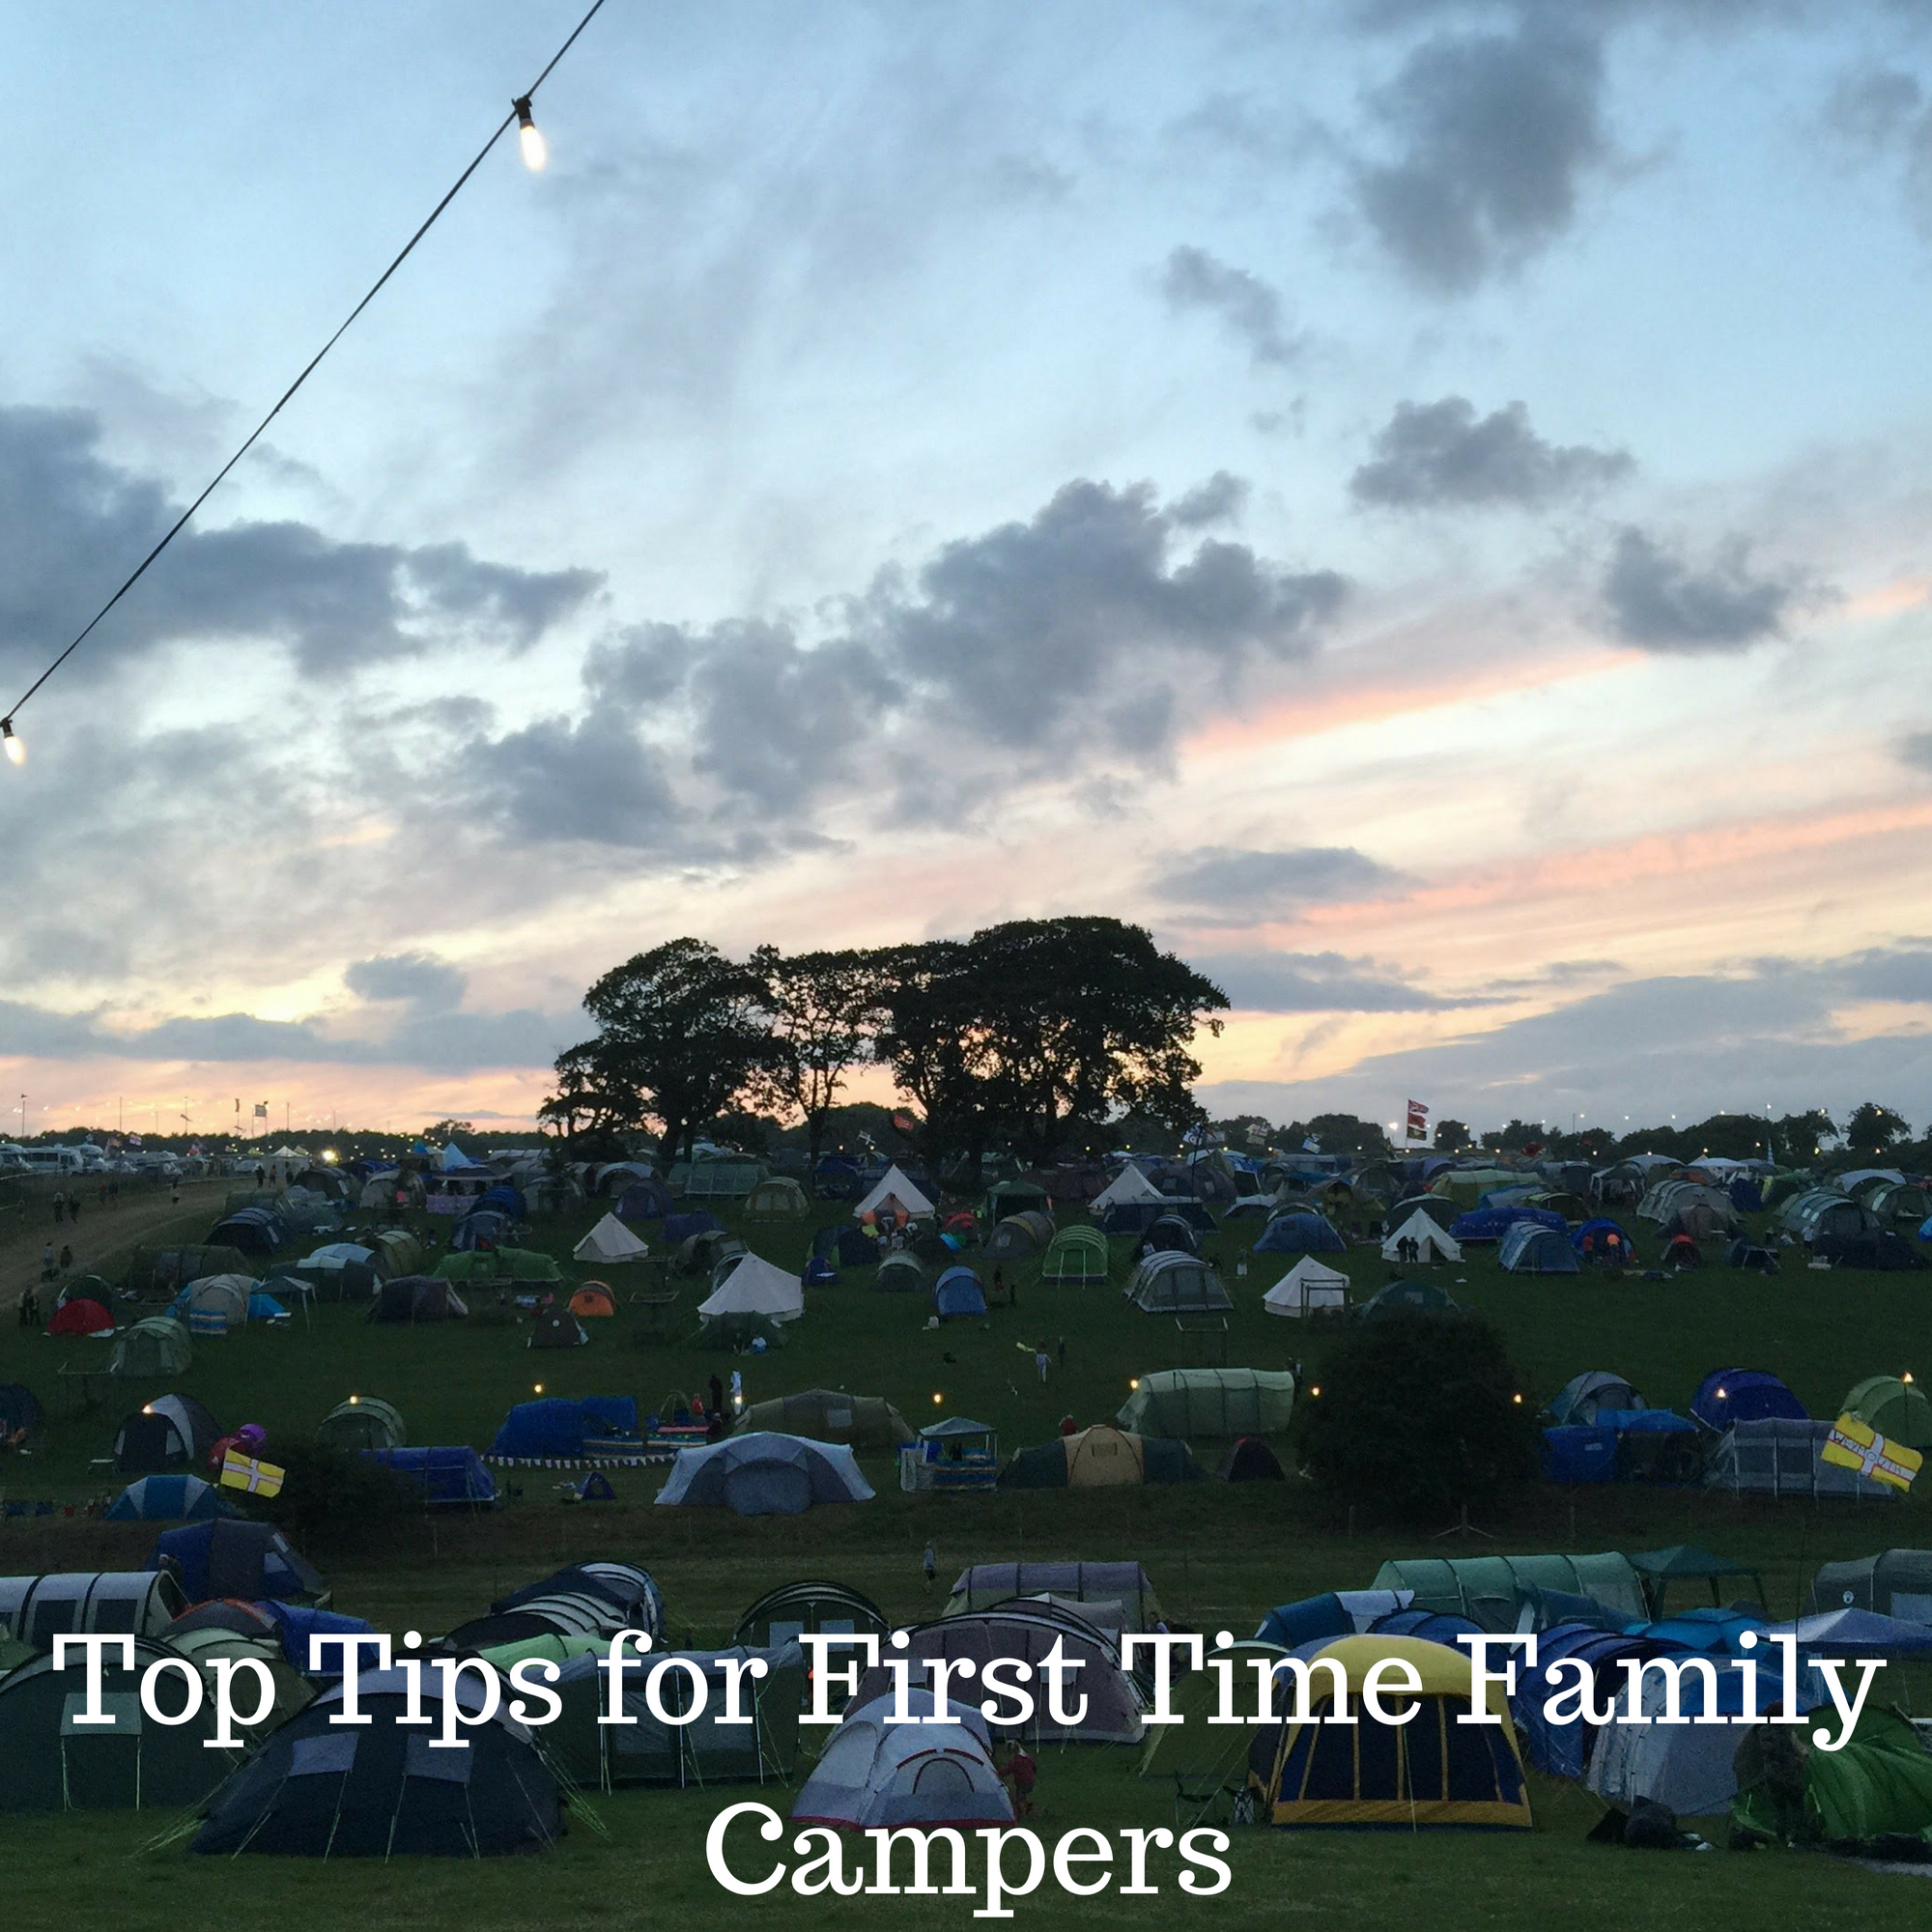 Top Tips for First Time Family Campers